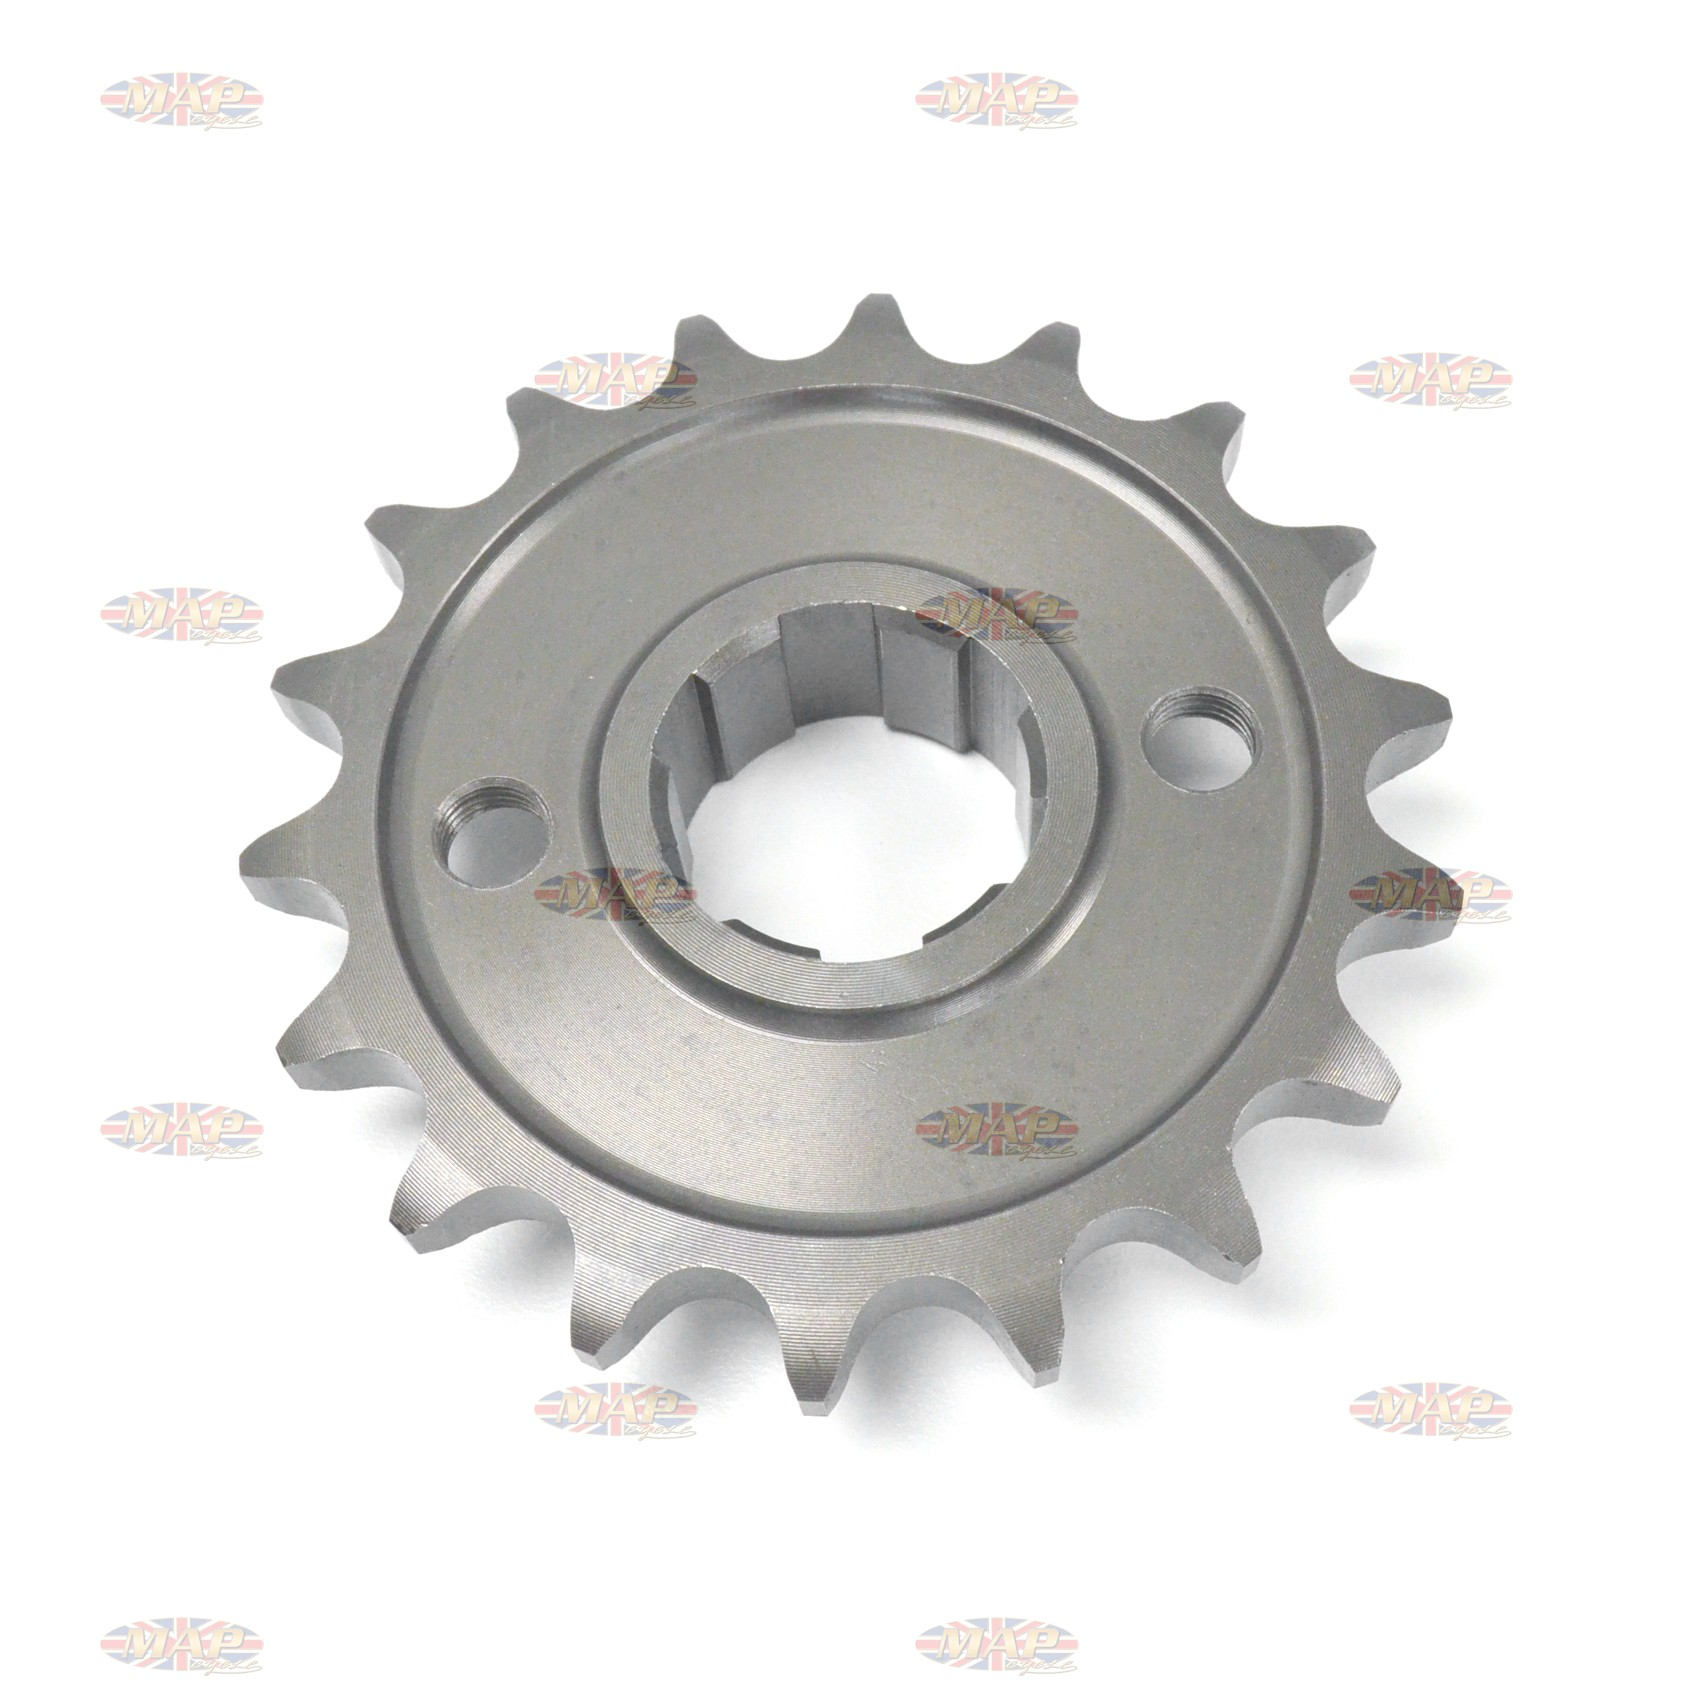 Triumph 650 TR6 T120 18-Tooth 4-Speed Gearbox Sprocket UK 57-1917